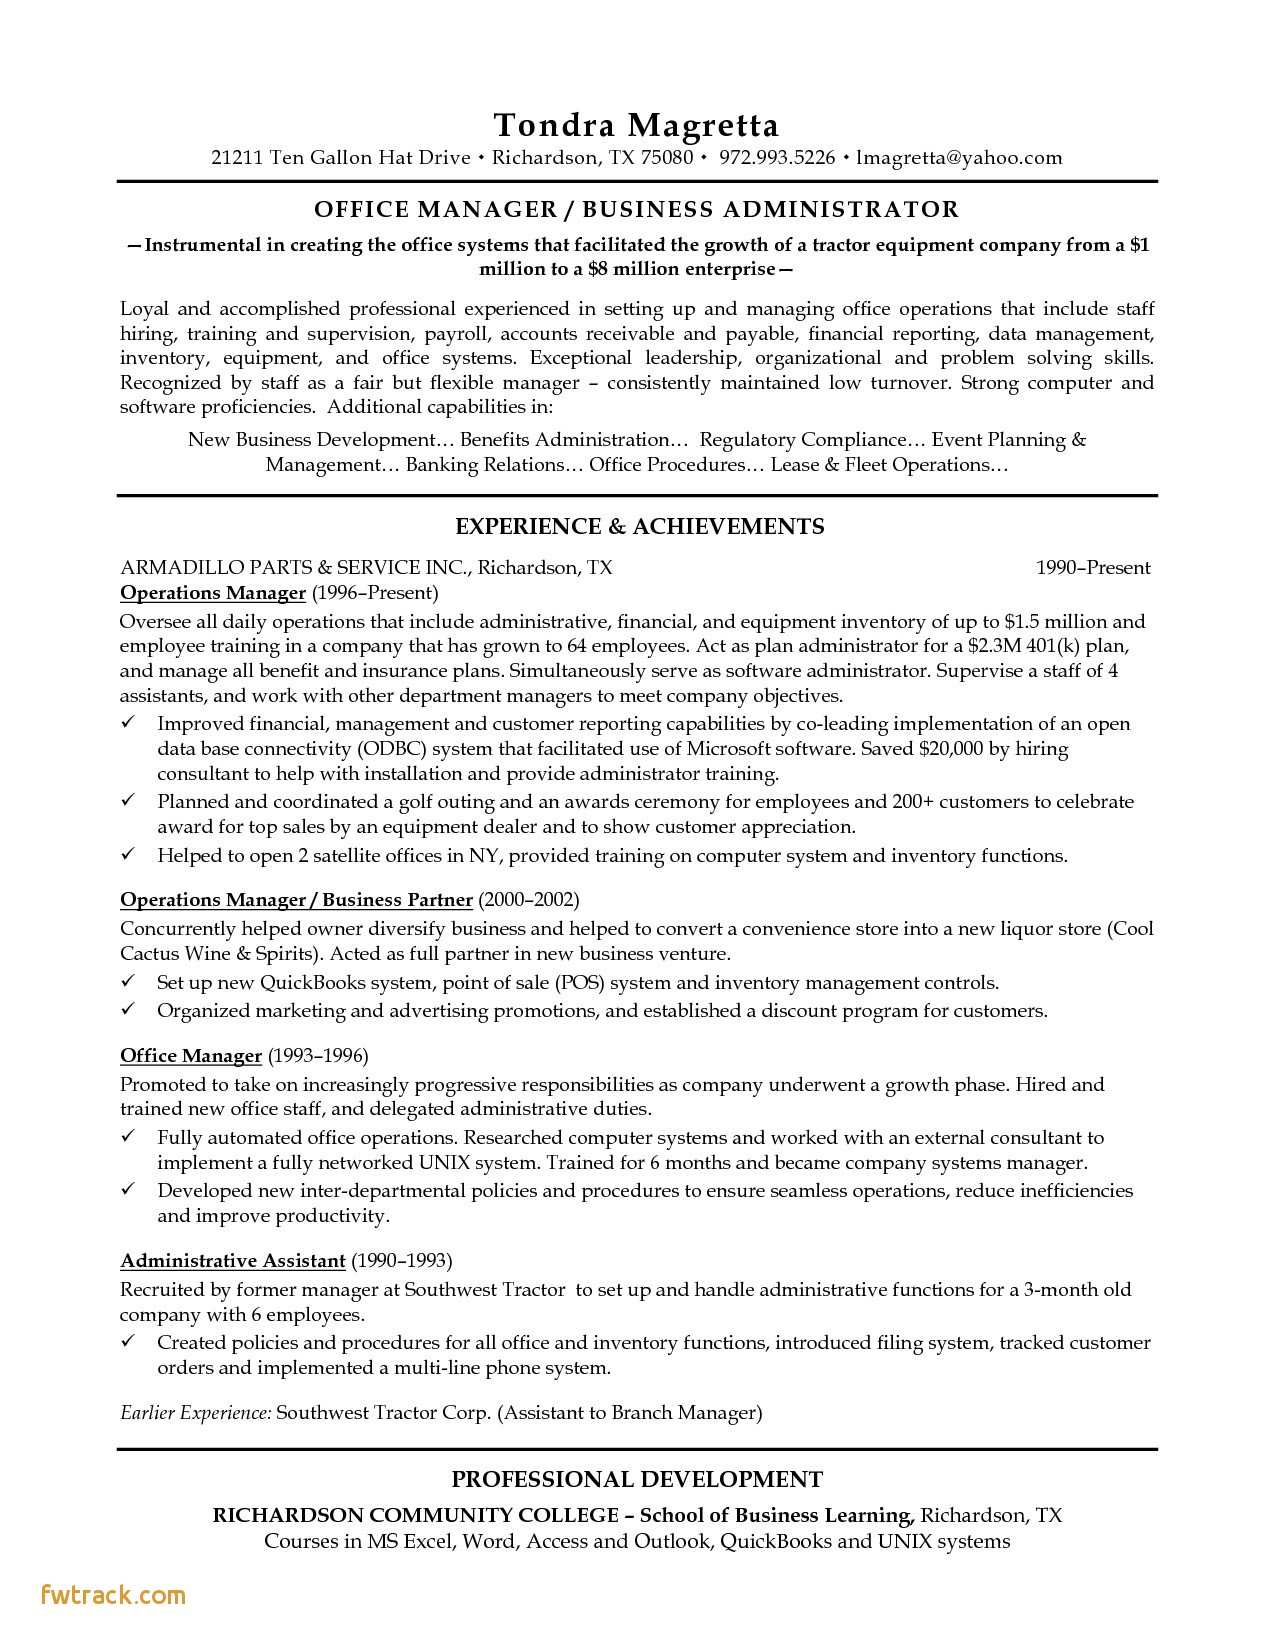 Office Manager Resume Template - Resume Examples for Retail Fwtrack Fwtrack